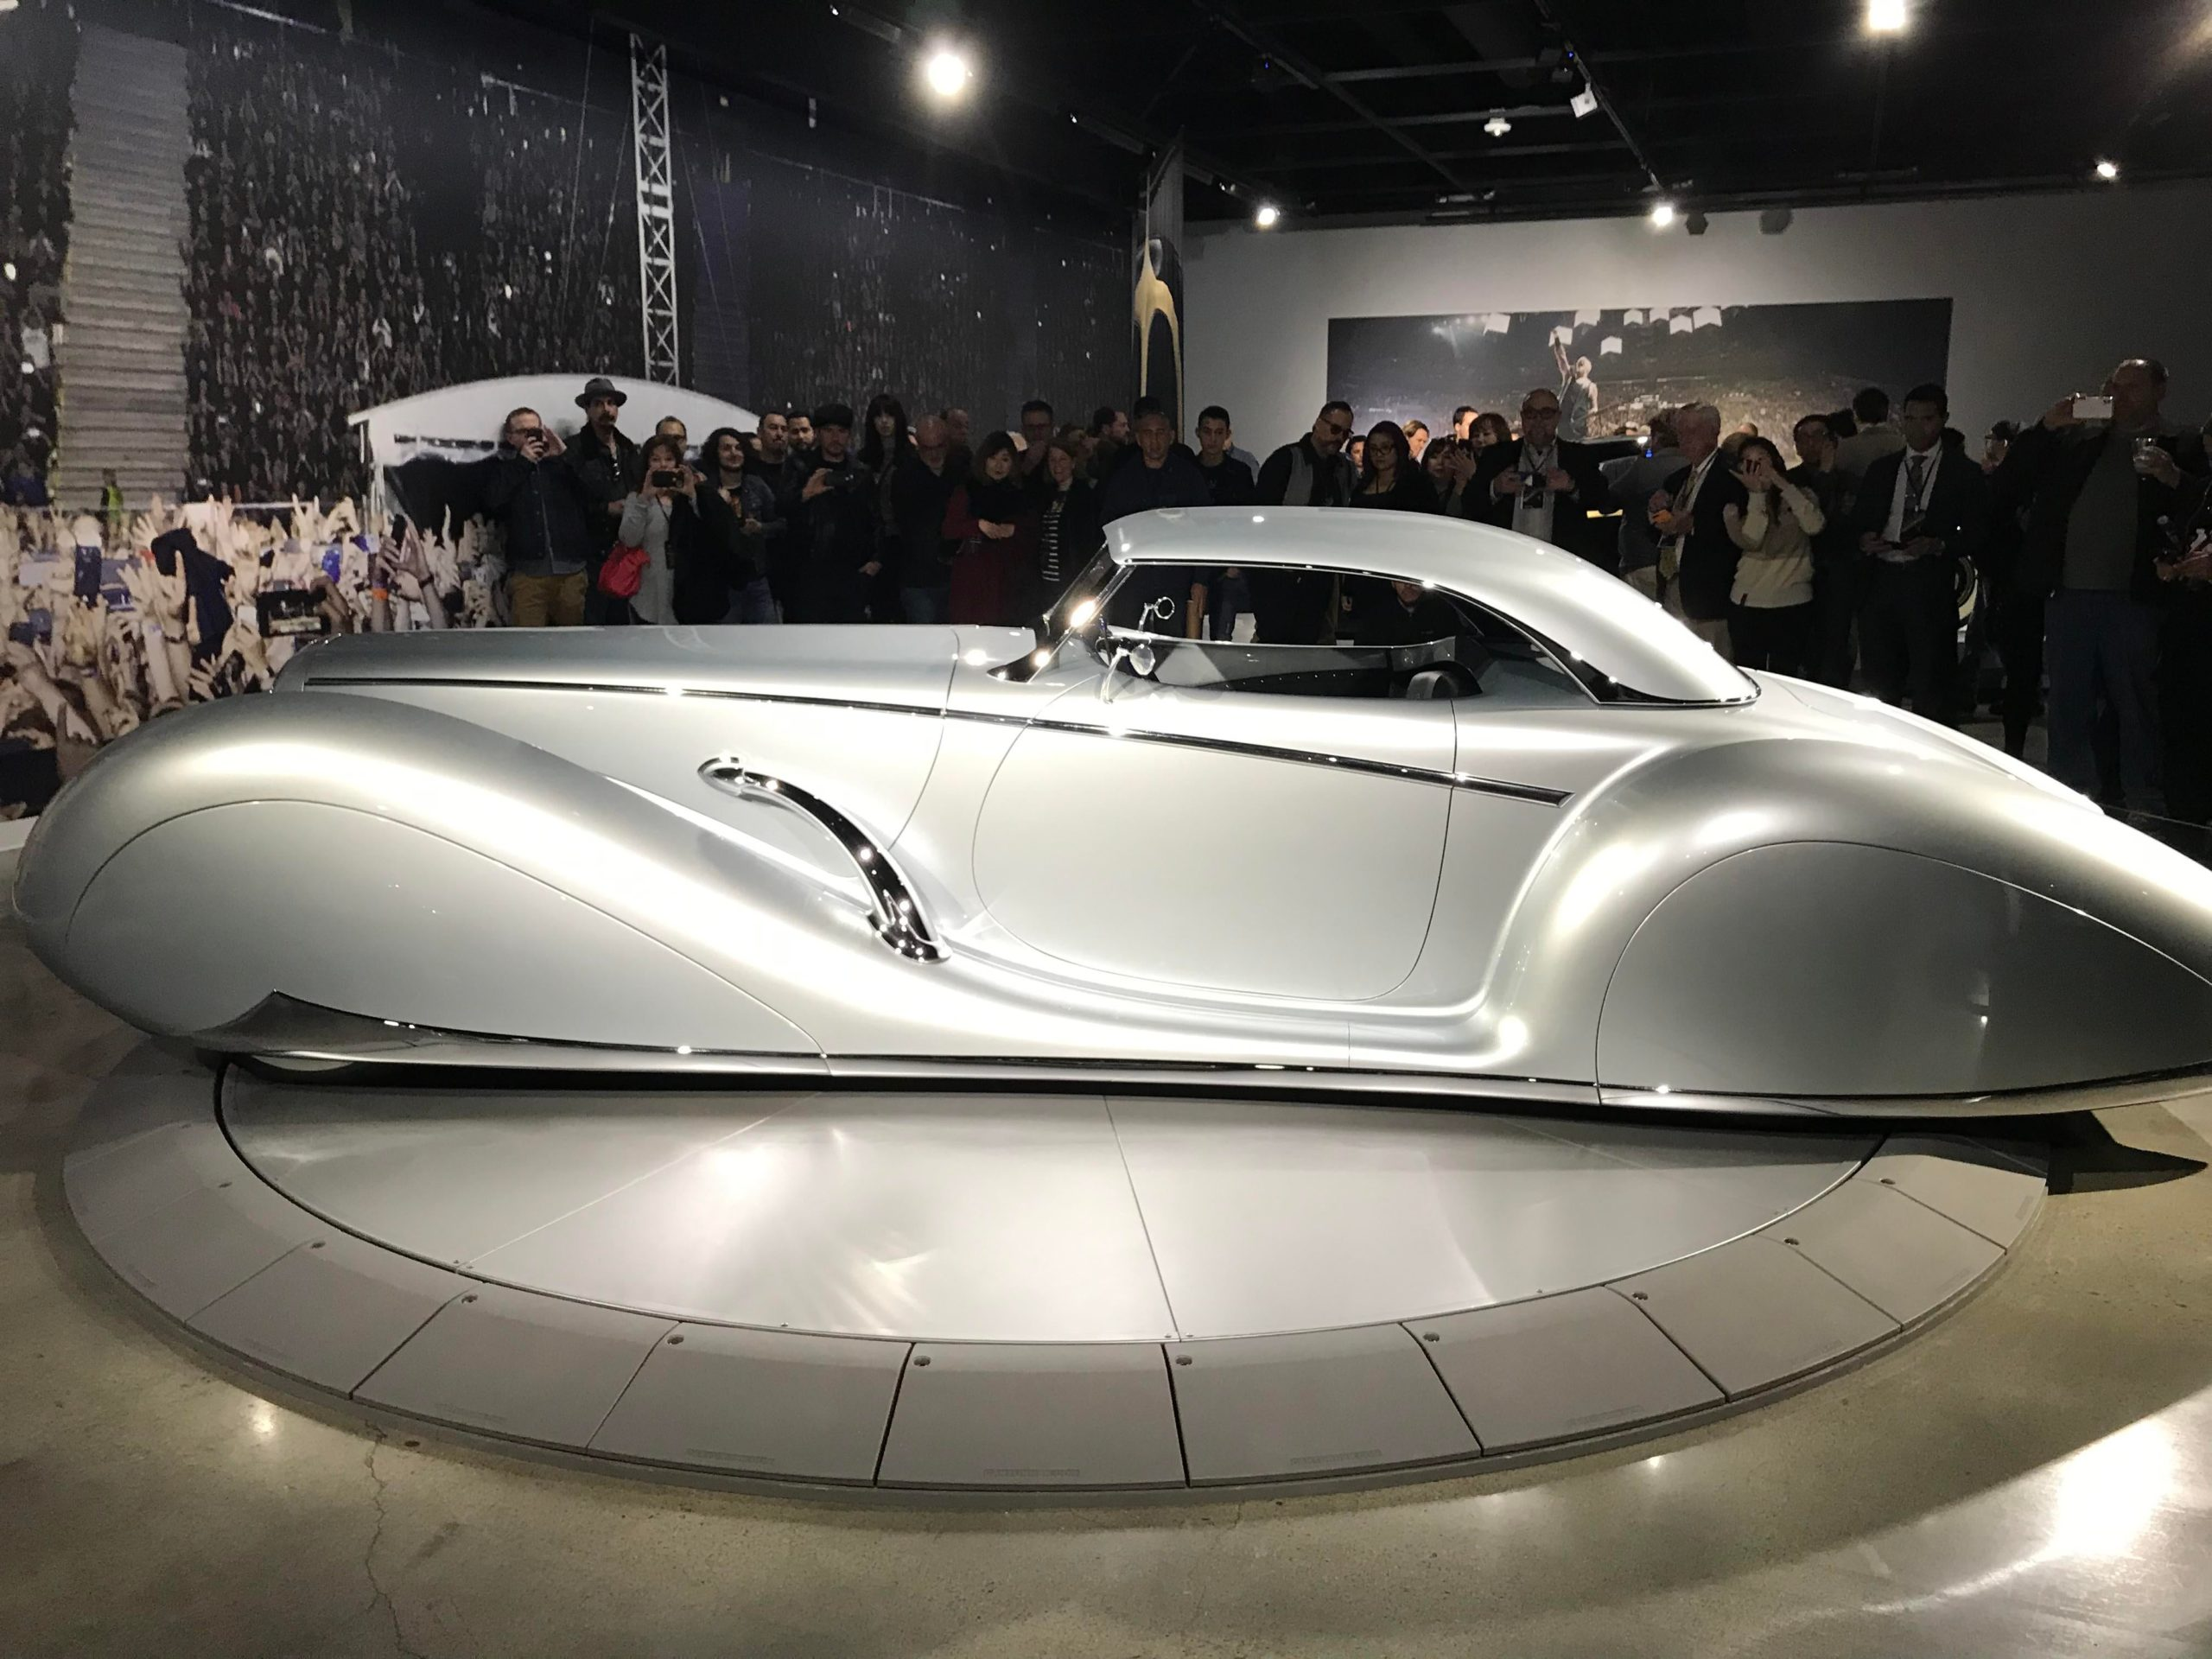 James Hetfield's Aquarius car is a beauty! His collection is at the Petersen Auto Museum through November 2020